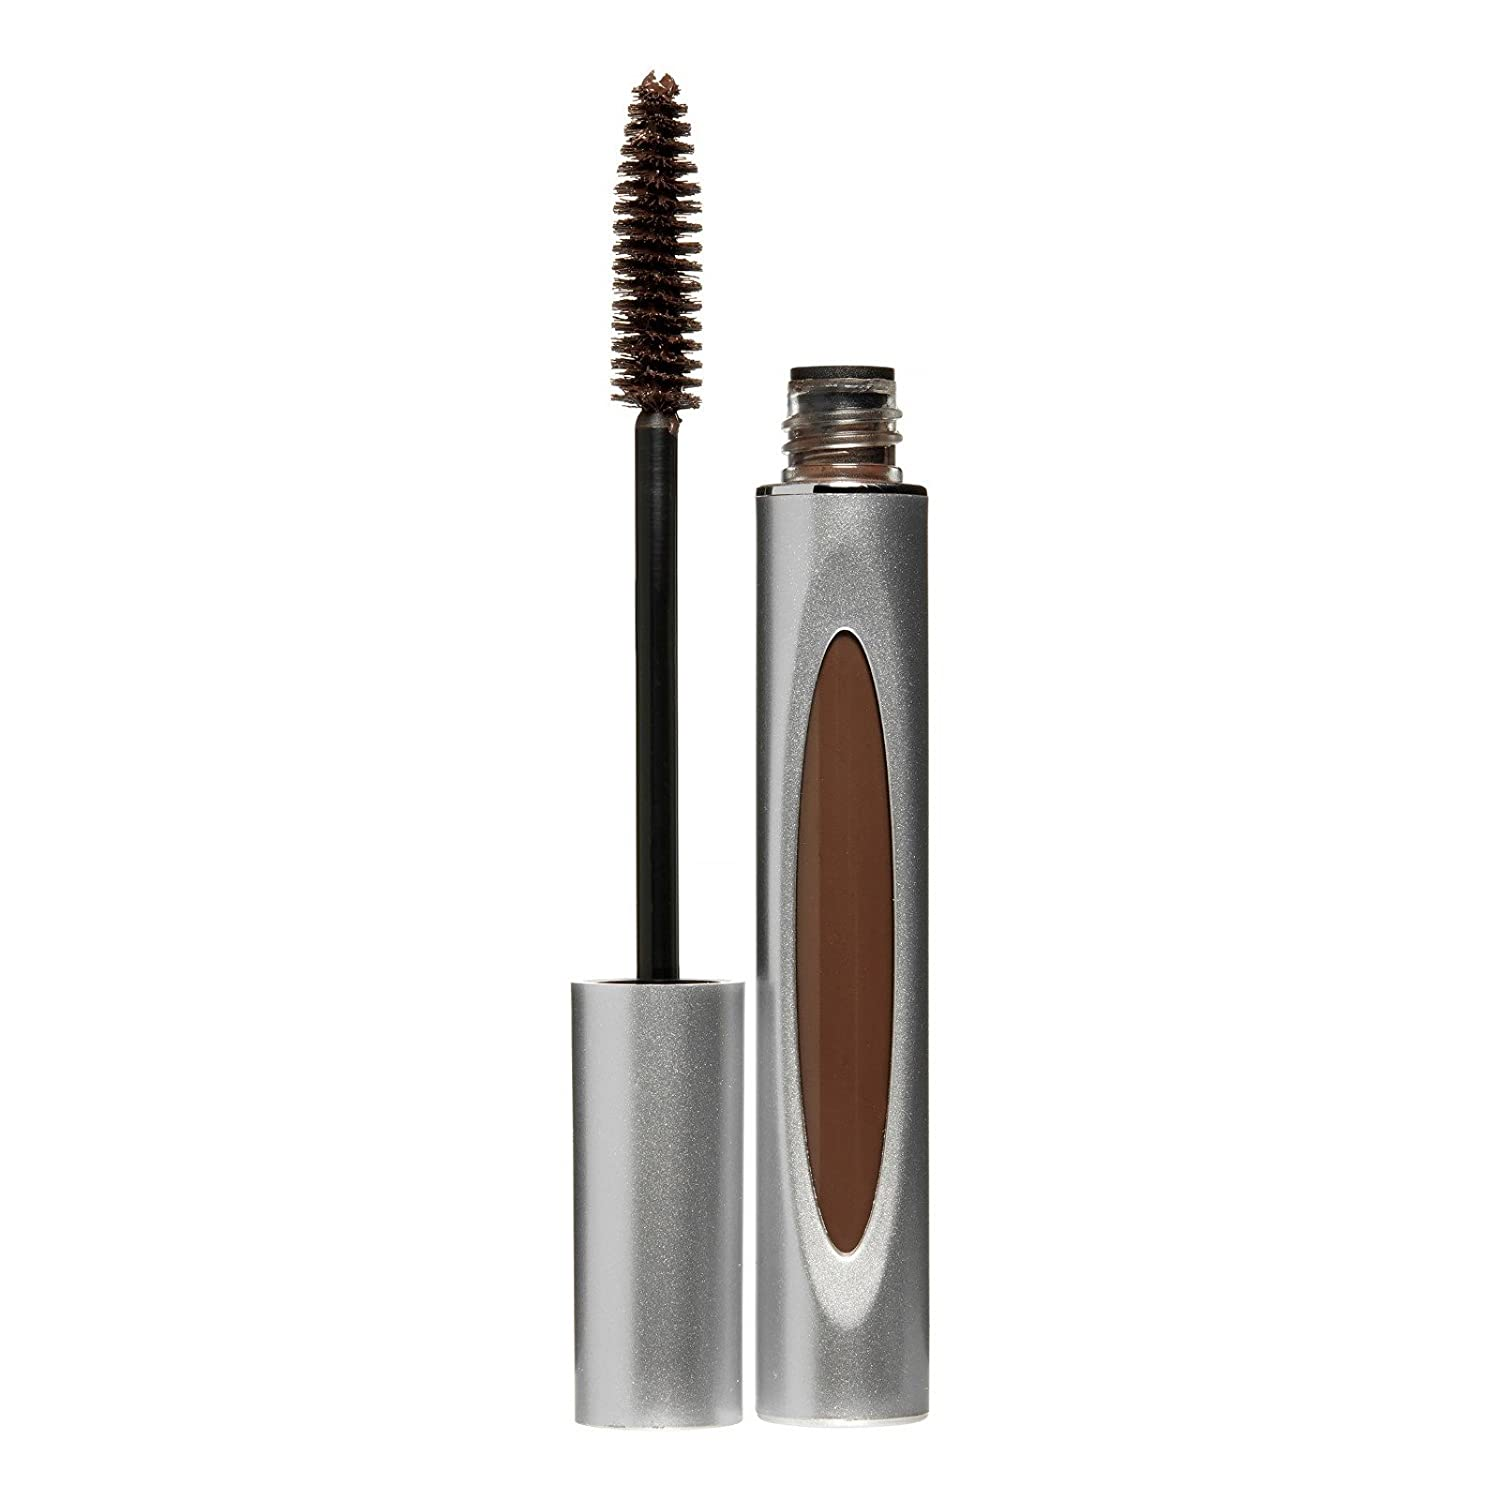 Honeybee Gardens Truly Natural Mascara, Chocolate Truffle | Vegan, Cruelty Free, Paraben Free, Gluten Free | Lash conditioning & flake free